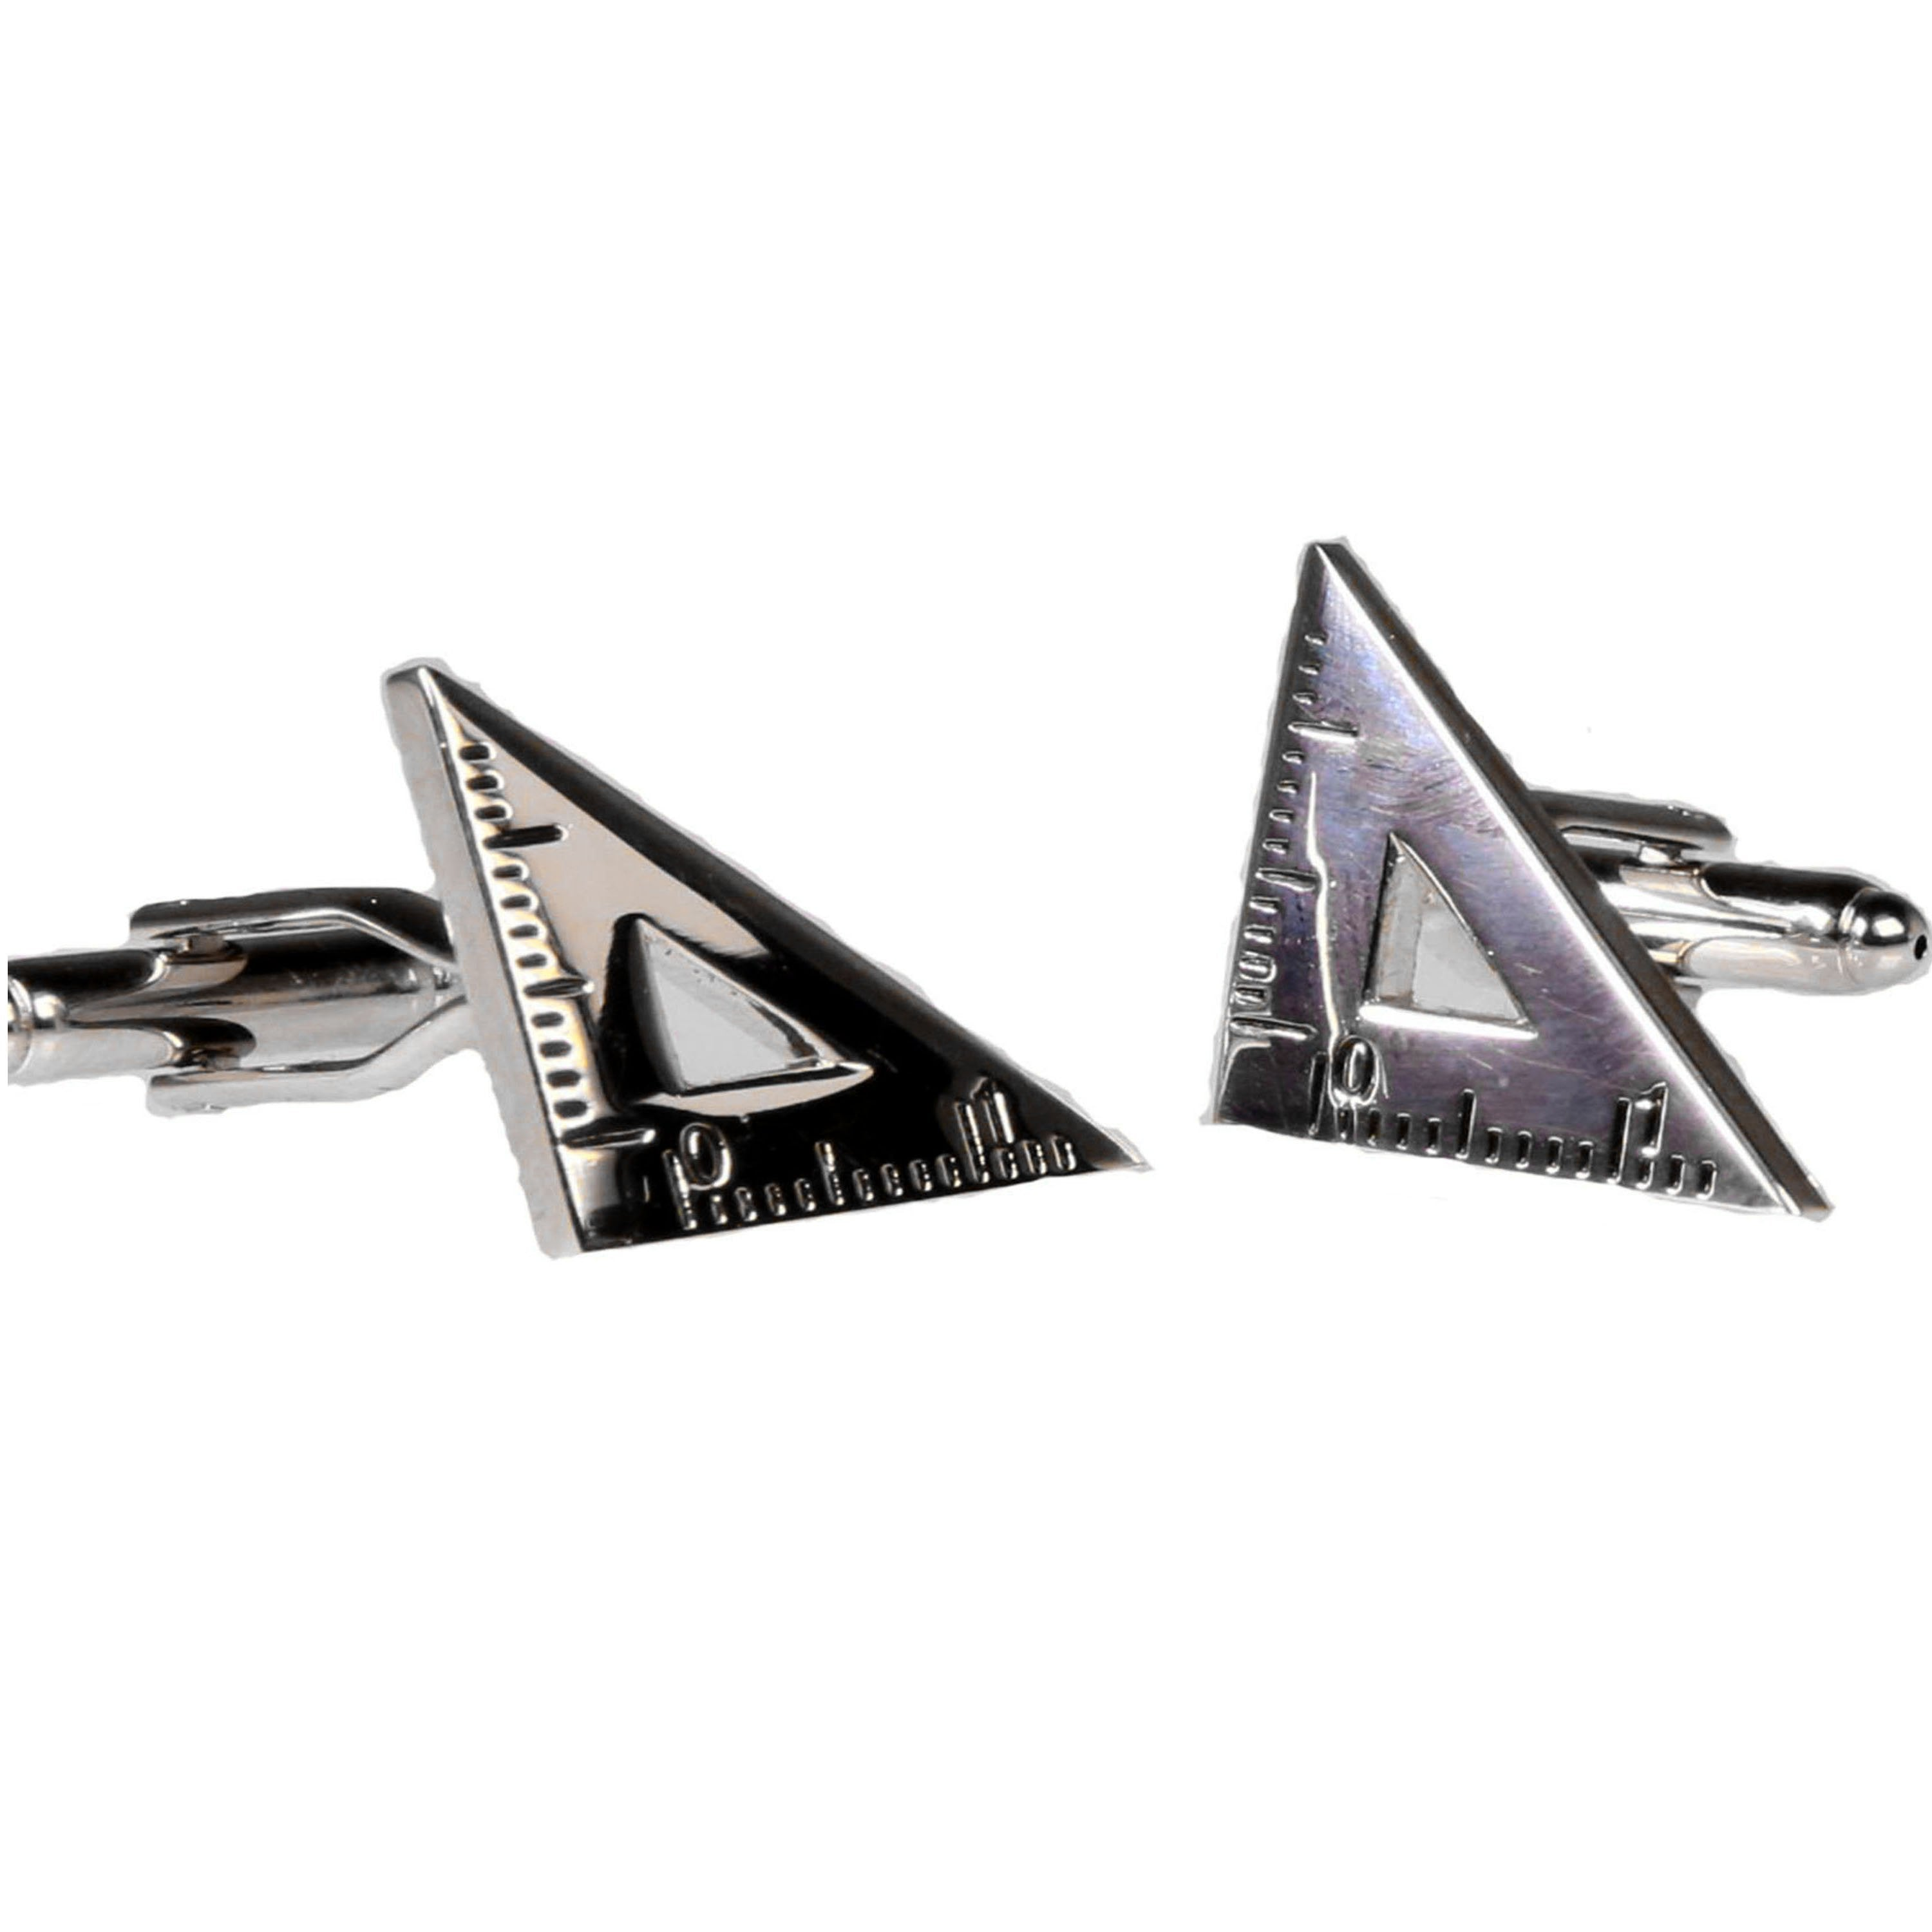 Silvertone Novelty Triangle Ruler Cufflinks with Jewelry Box - Giorgio's Menswear